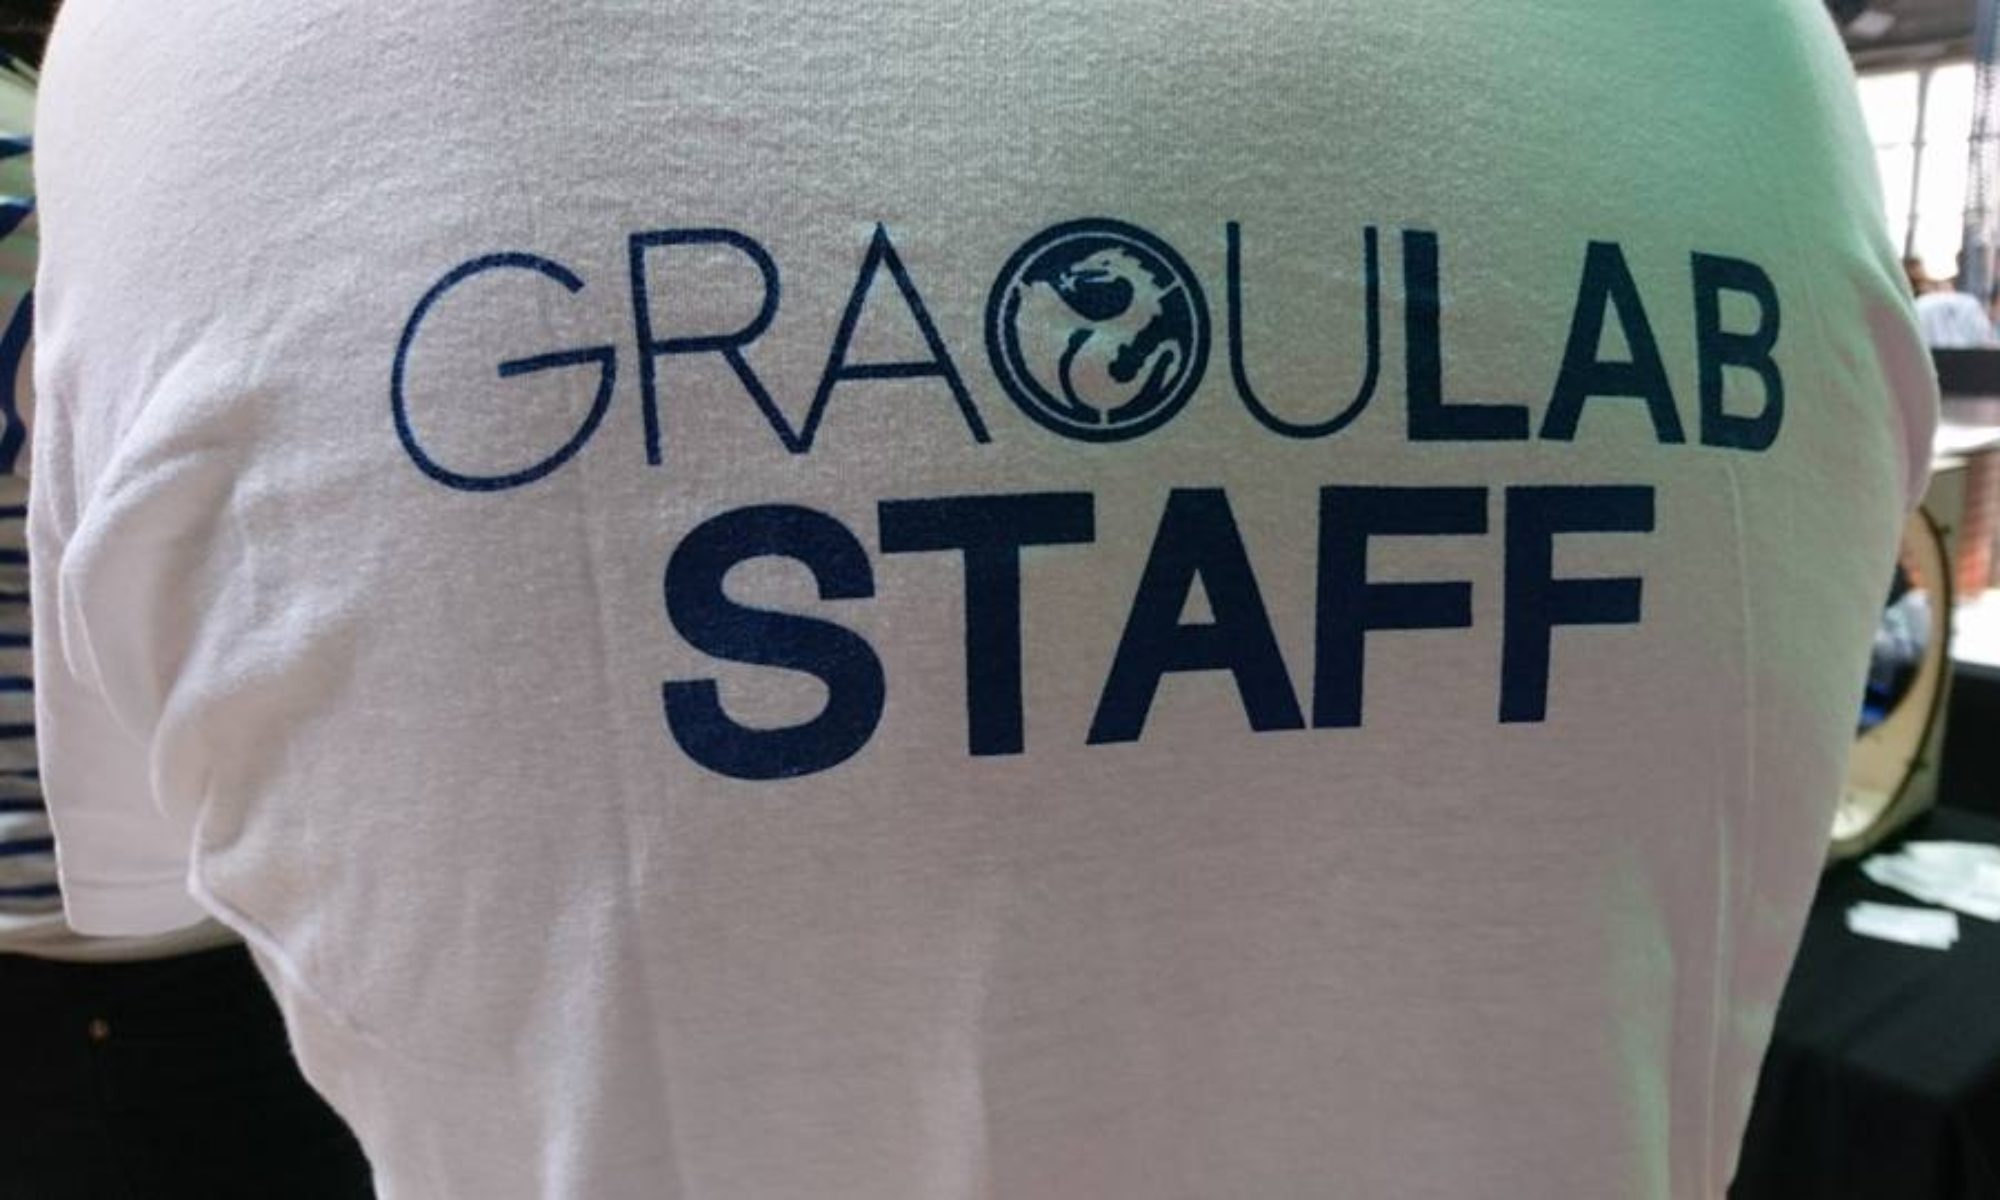 GraouLAB